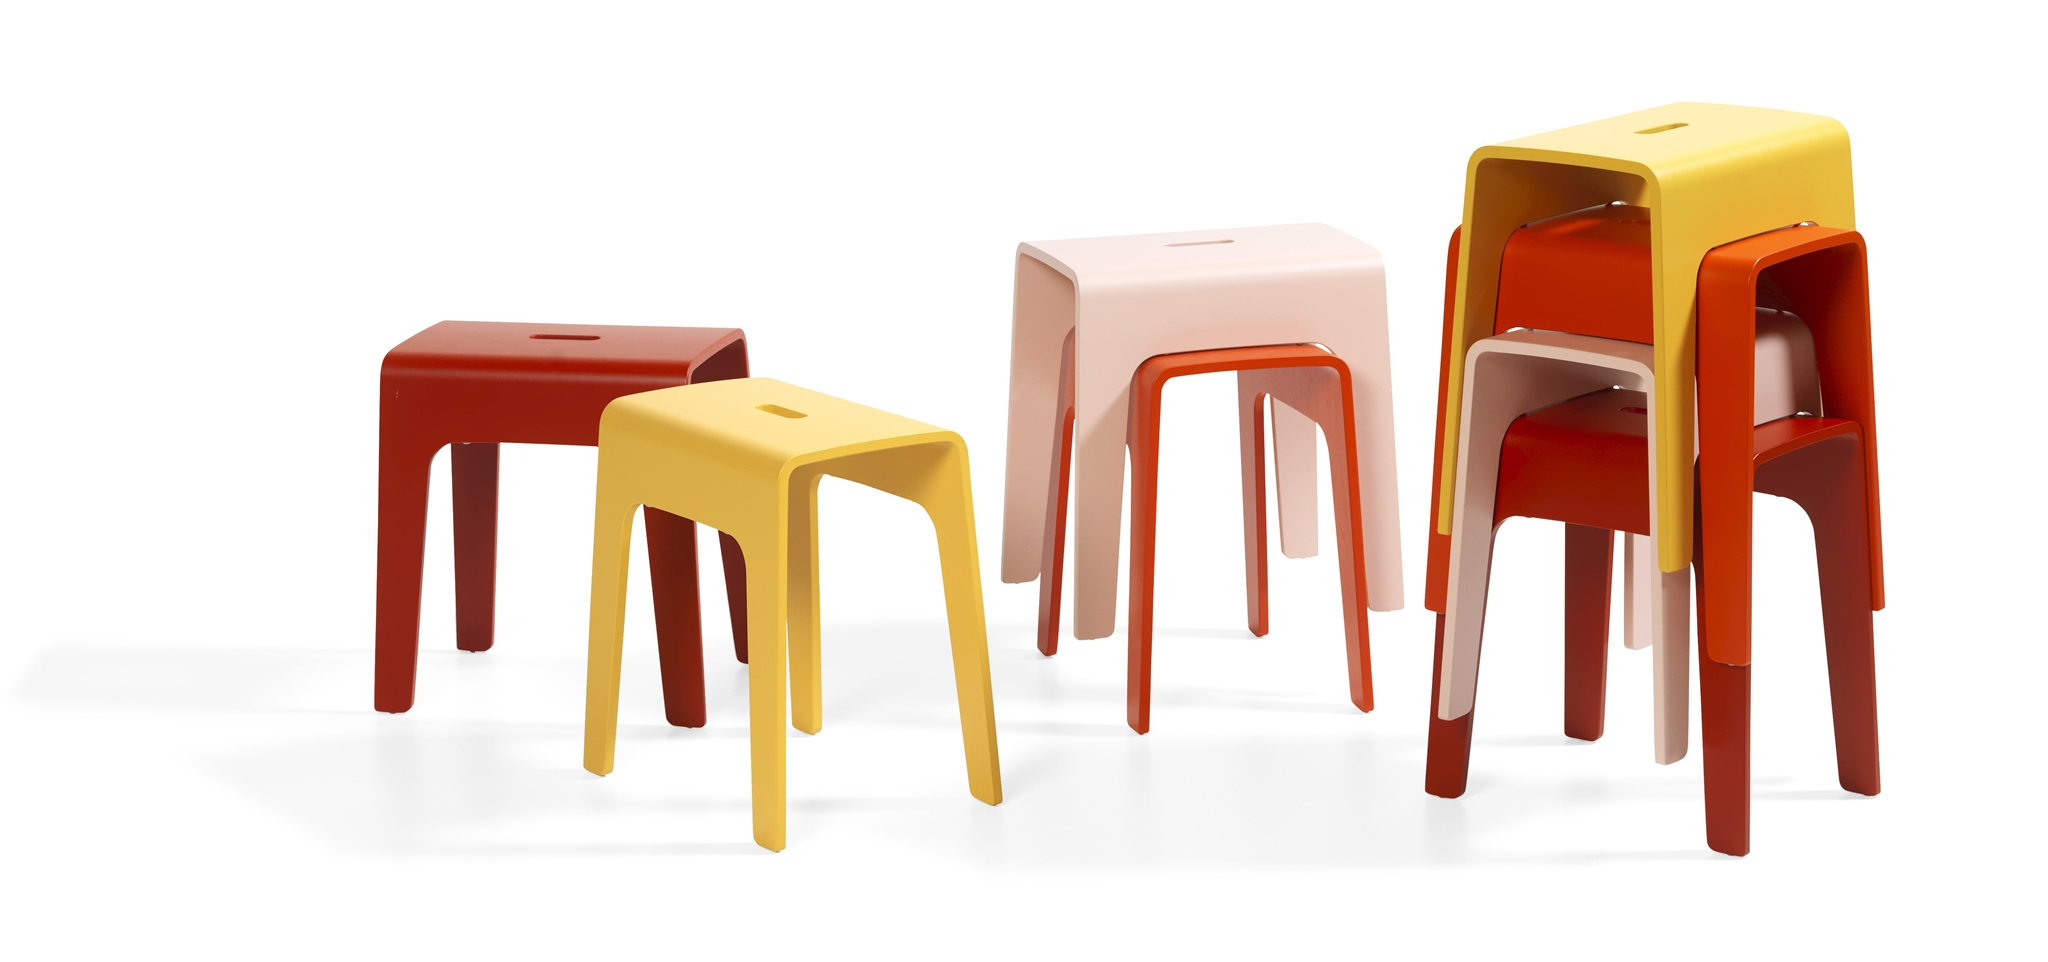 opla shop on stackable stools stool crowdyhouse moskou